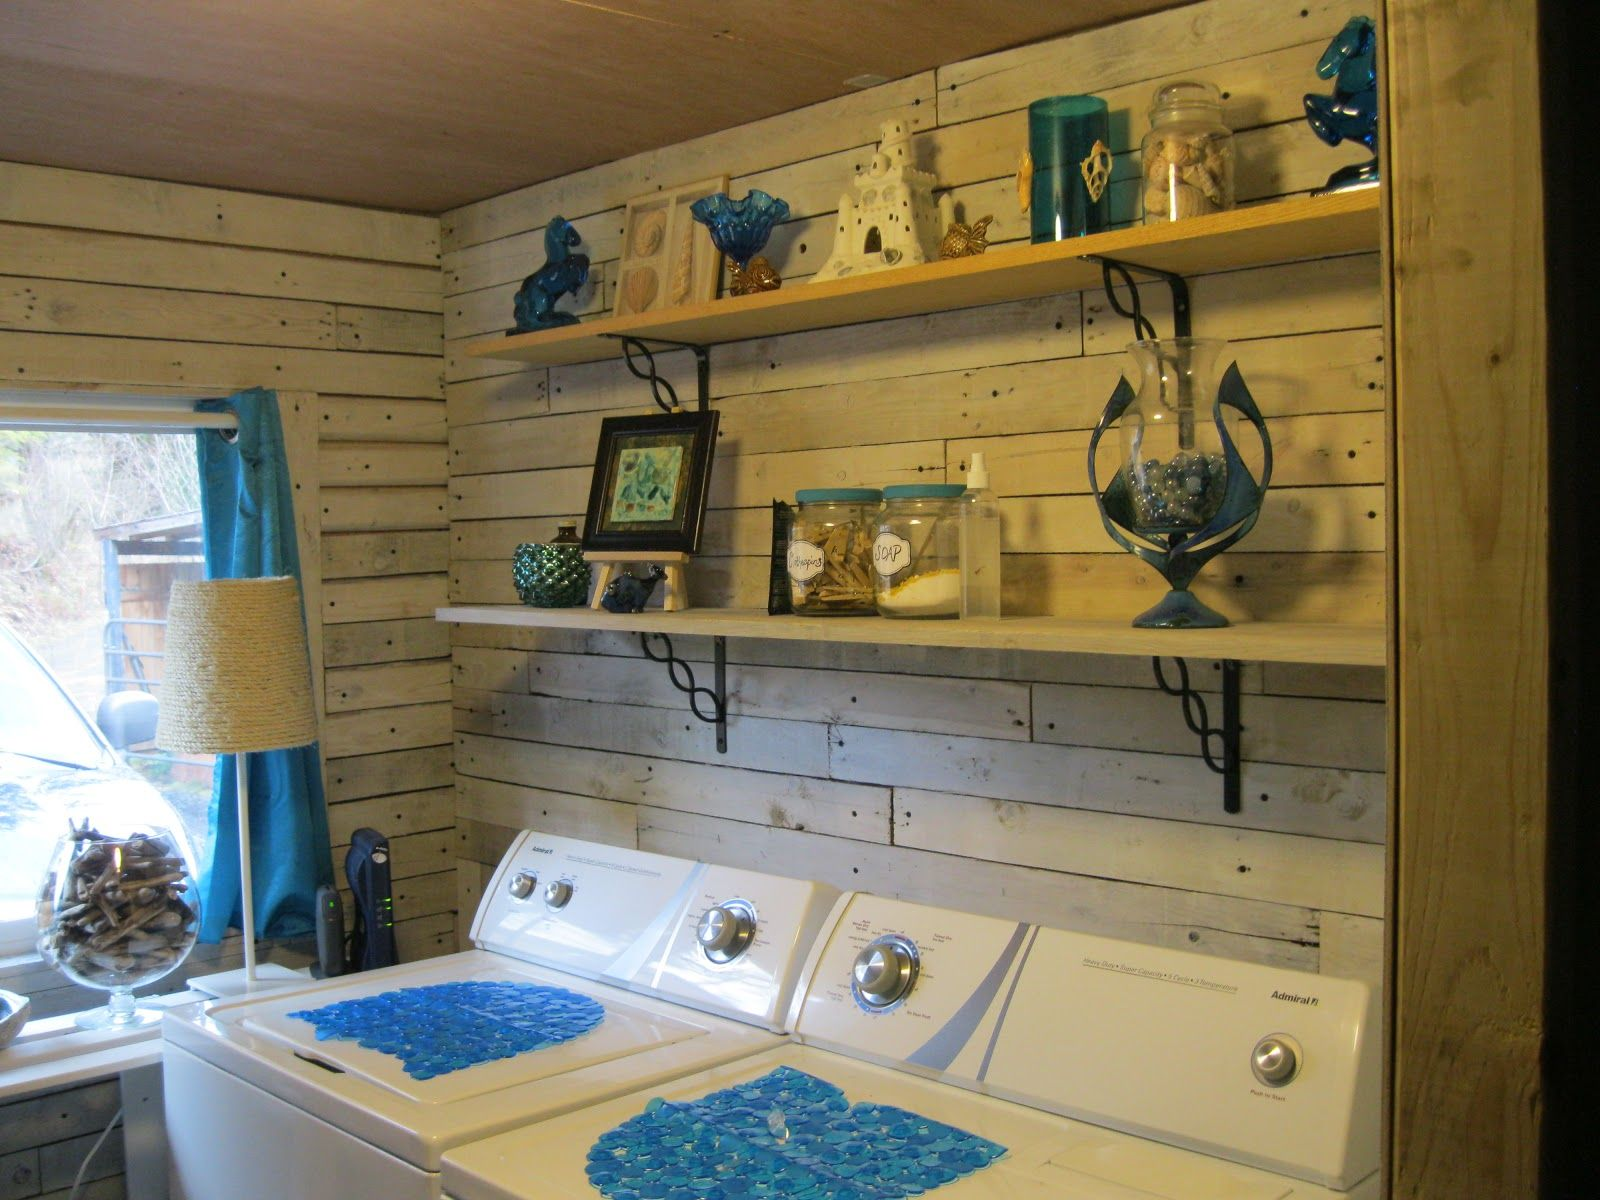 Laundry Room Makeover Ideas for your Mobile Home | Laundry ...